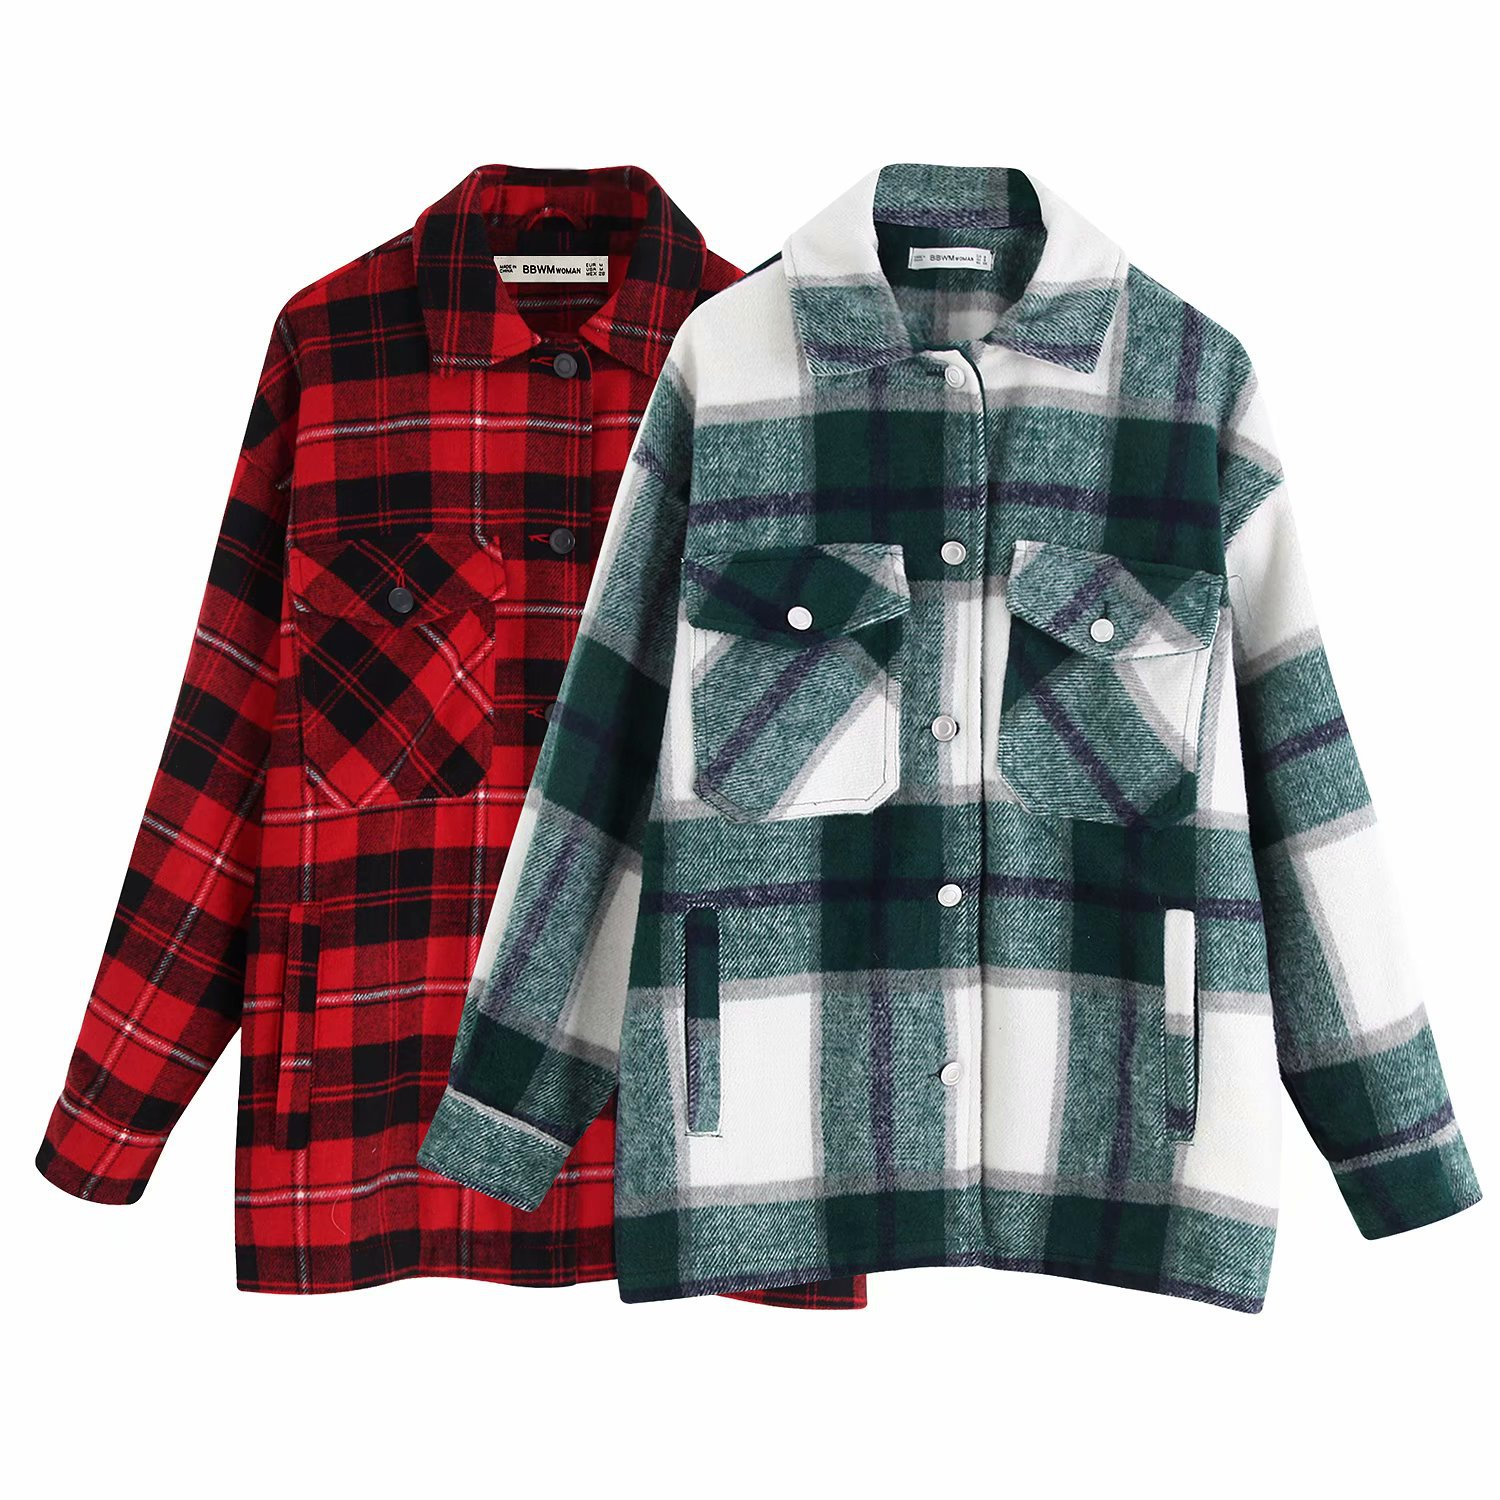 2020 Spring Autumn Europe America WOMEN Dress New Style Plaid Shirt Zaraing Vadiming Sheining Female Shirt Jacket Coat